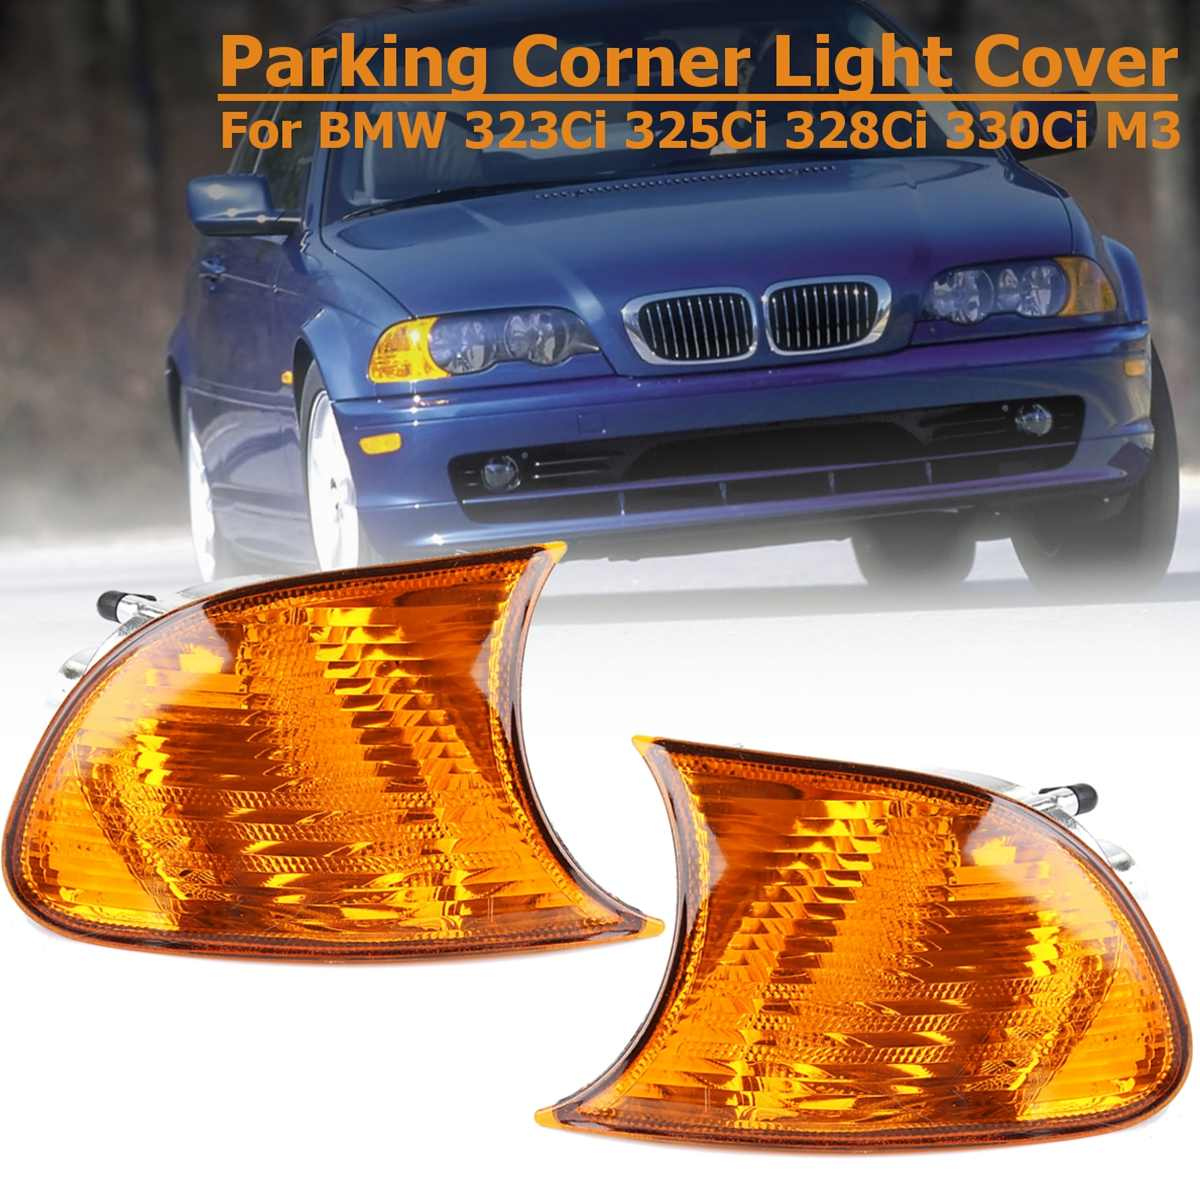 Car Front Turn Signal Light For BMW E46 3 Series Coupe M3 323Ci 325Ci 328Ci 330Ci 2000 2001 Car Left Right Side Corner  Amber